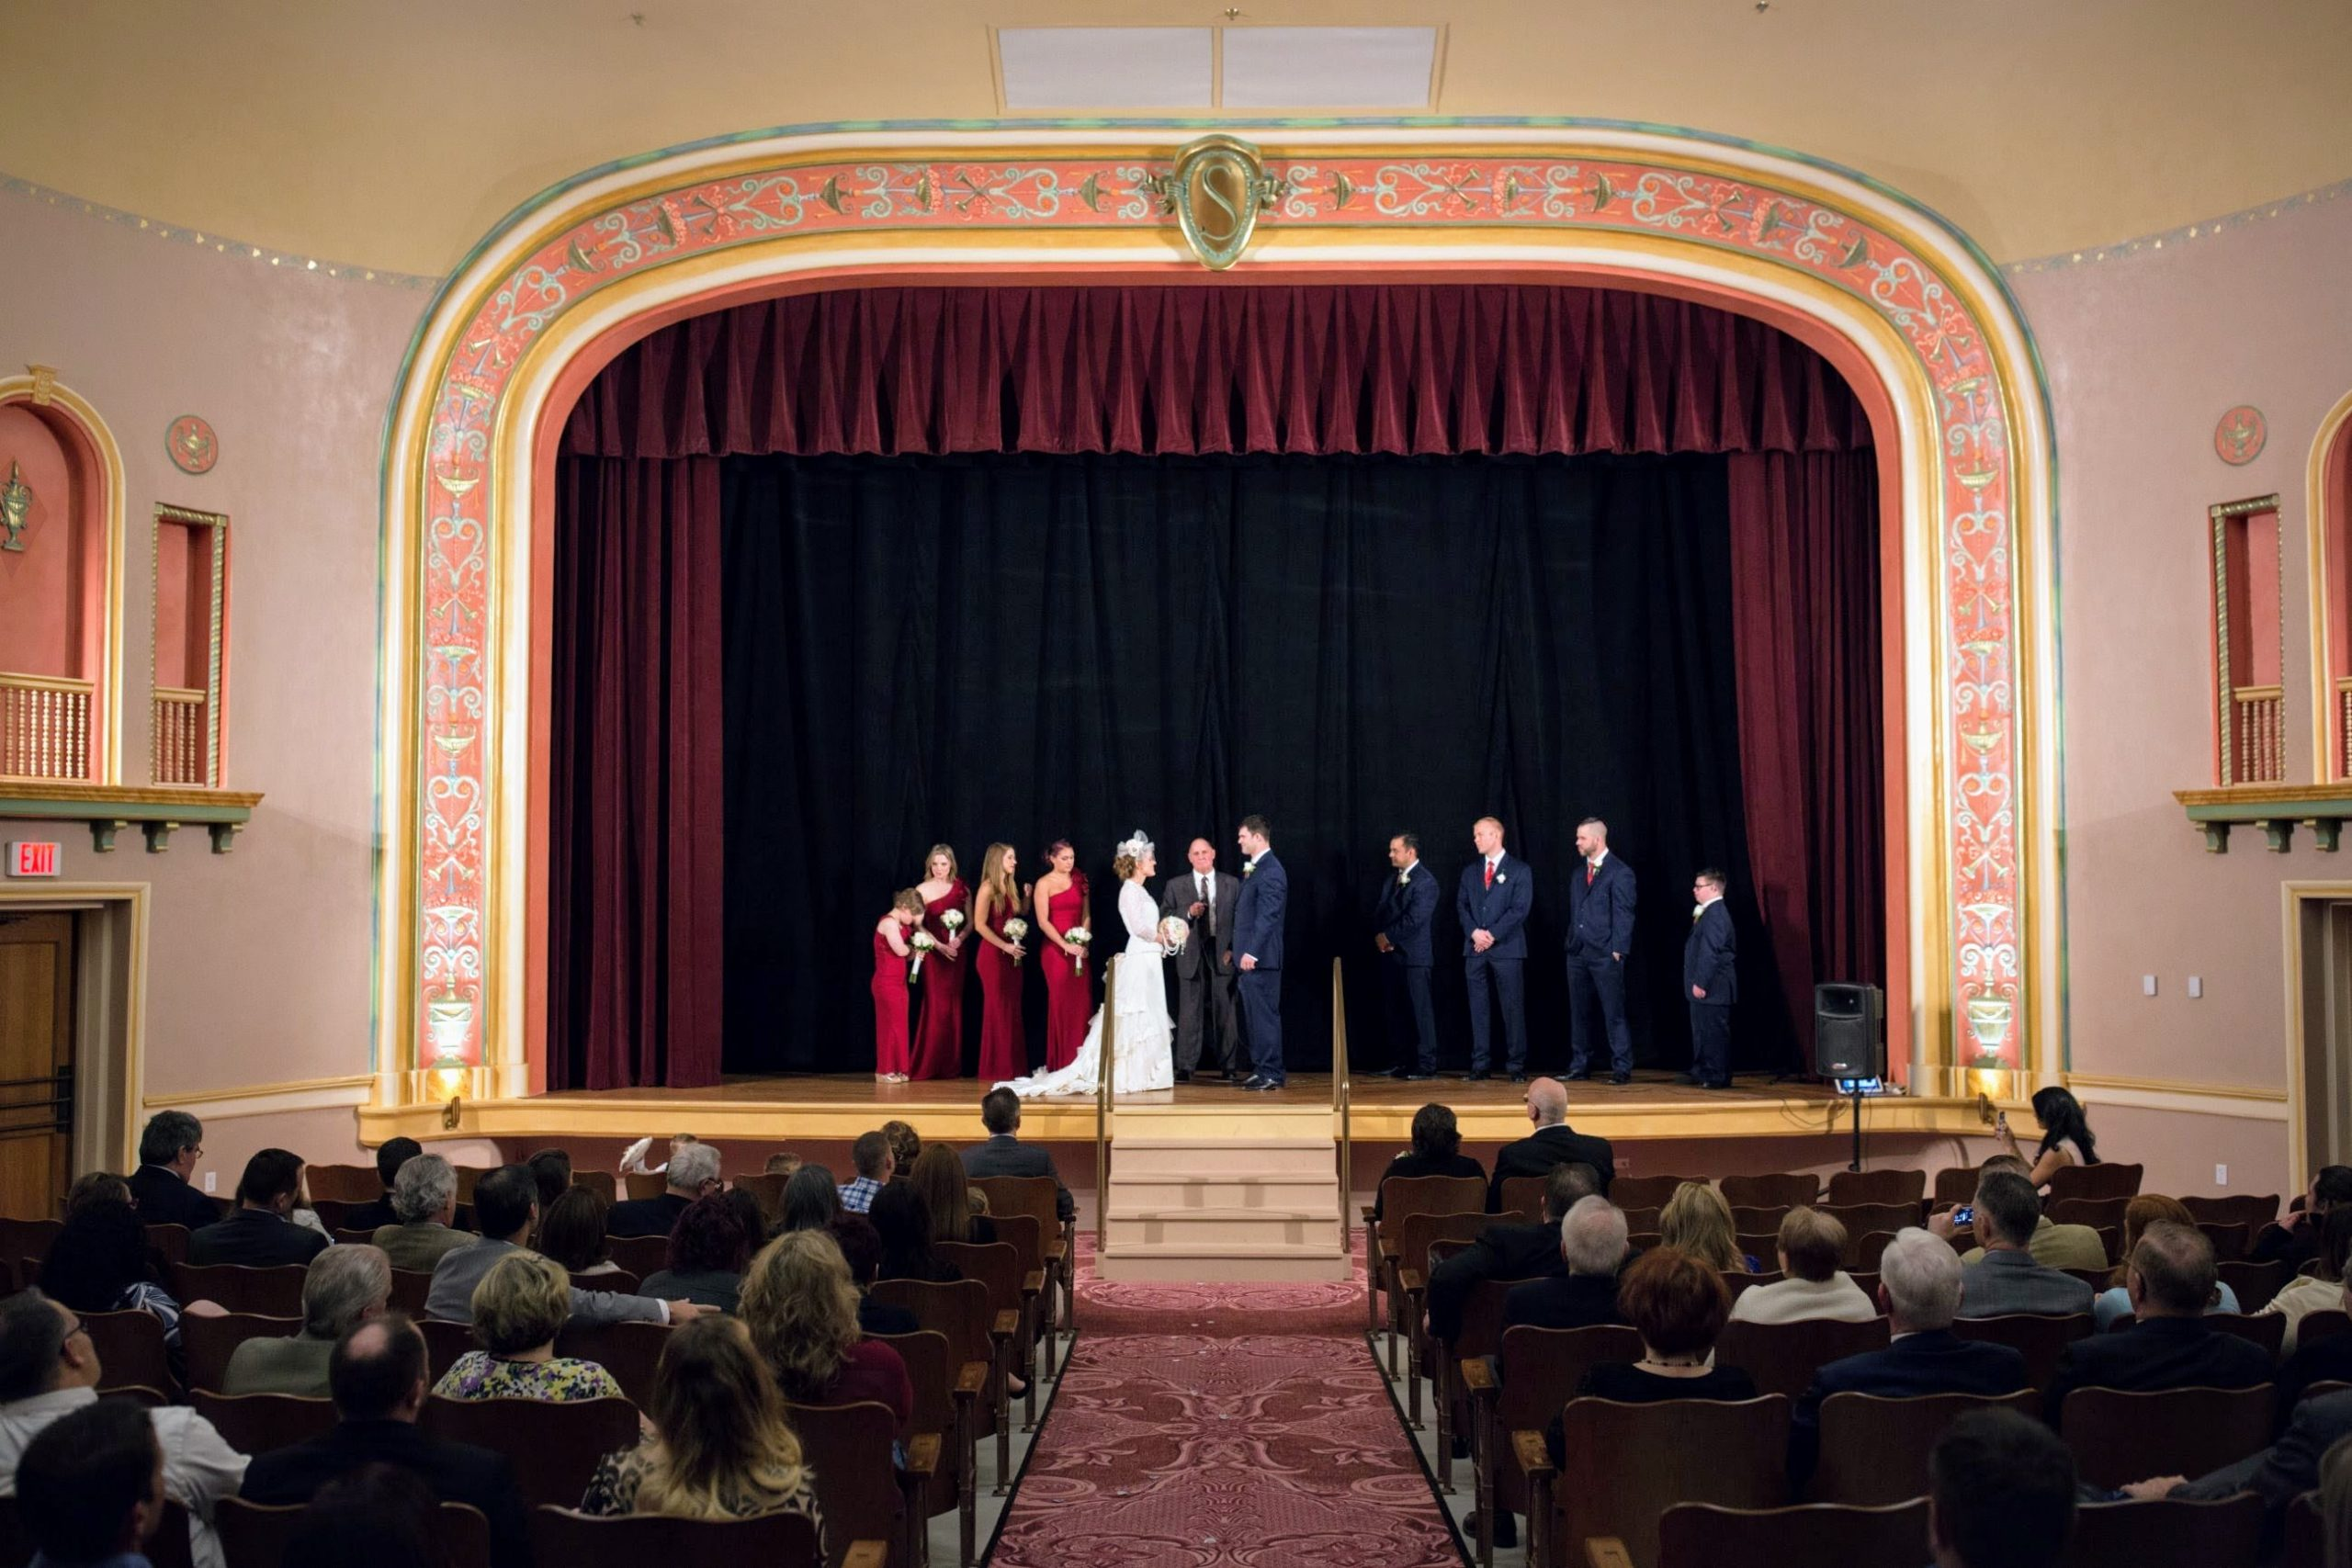 A wedding party stand on the stage of the vintage Vaudeville theatre as they say their vows. A crowd of guests look on.